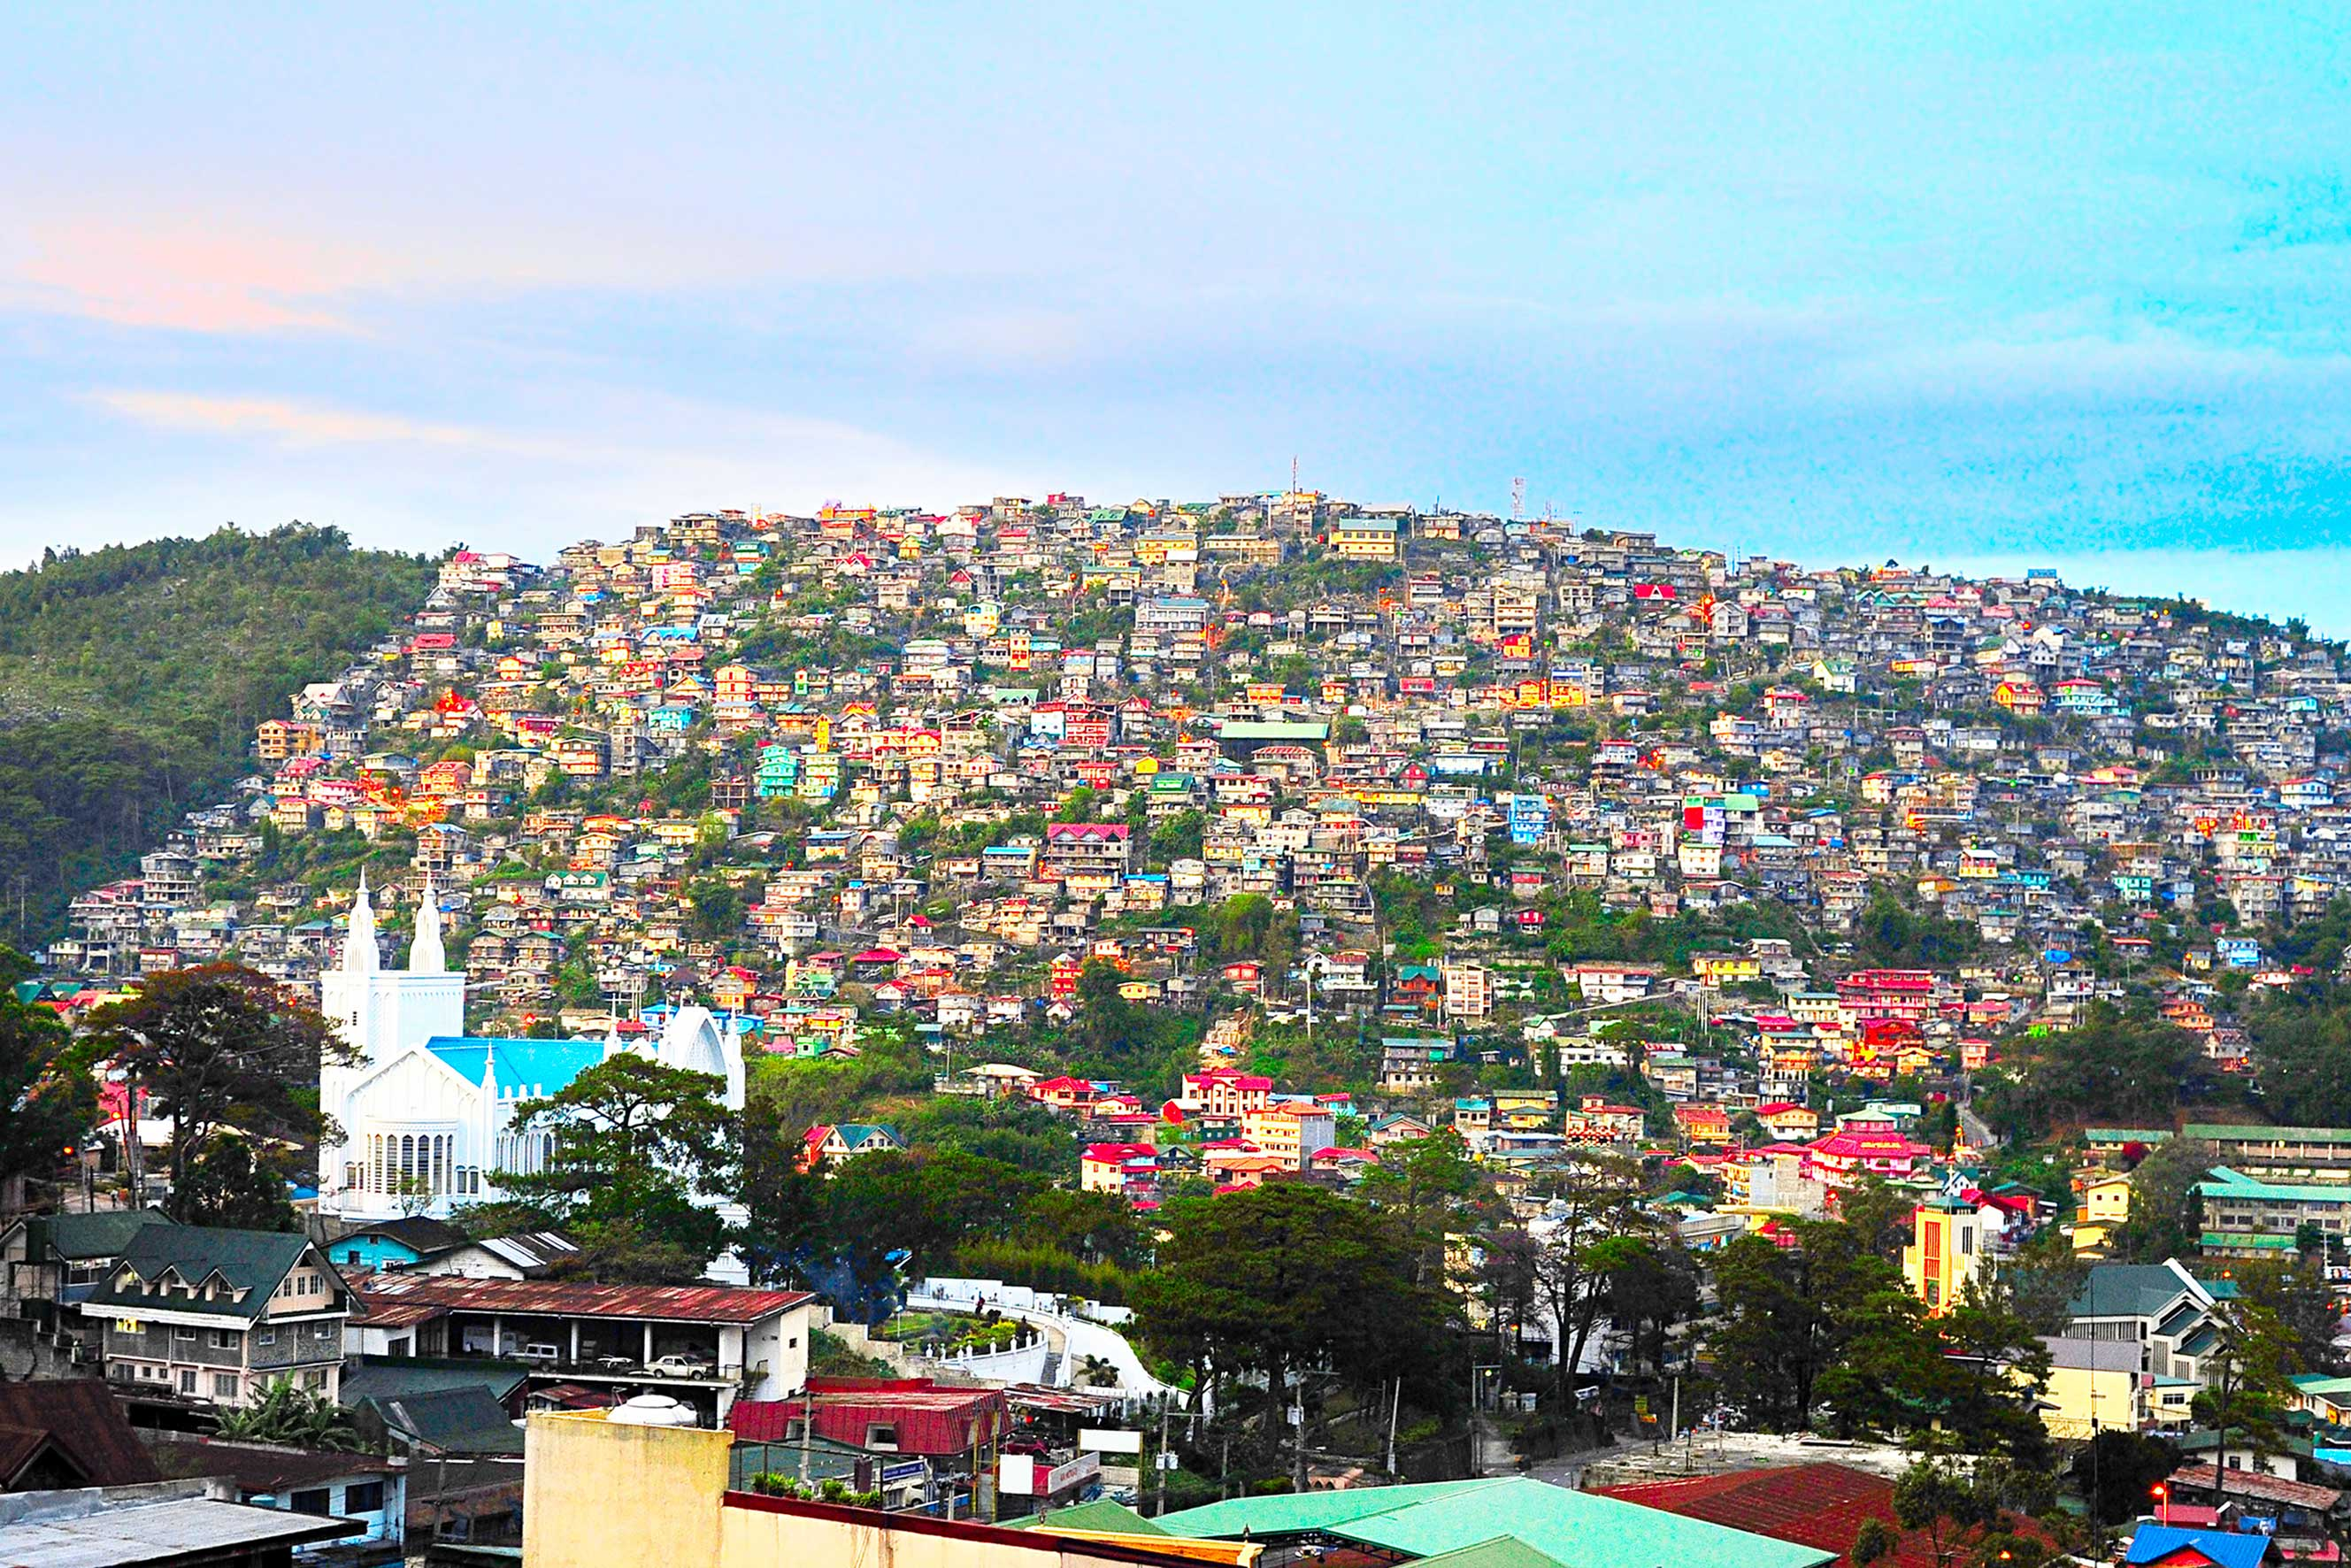 Baguio city at dusk, Luzon Island, Philippines